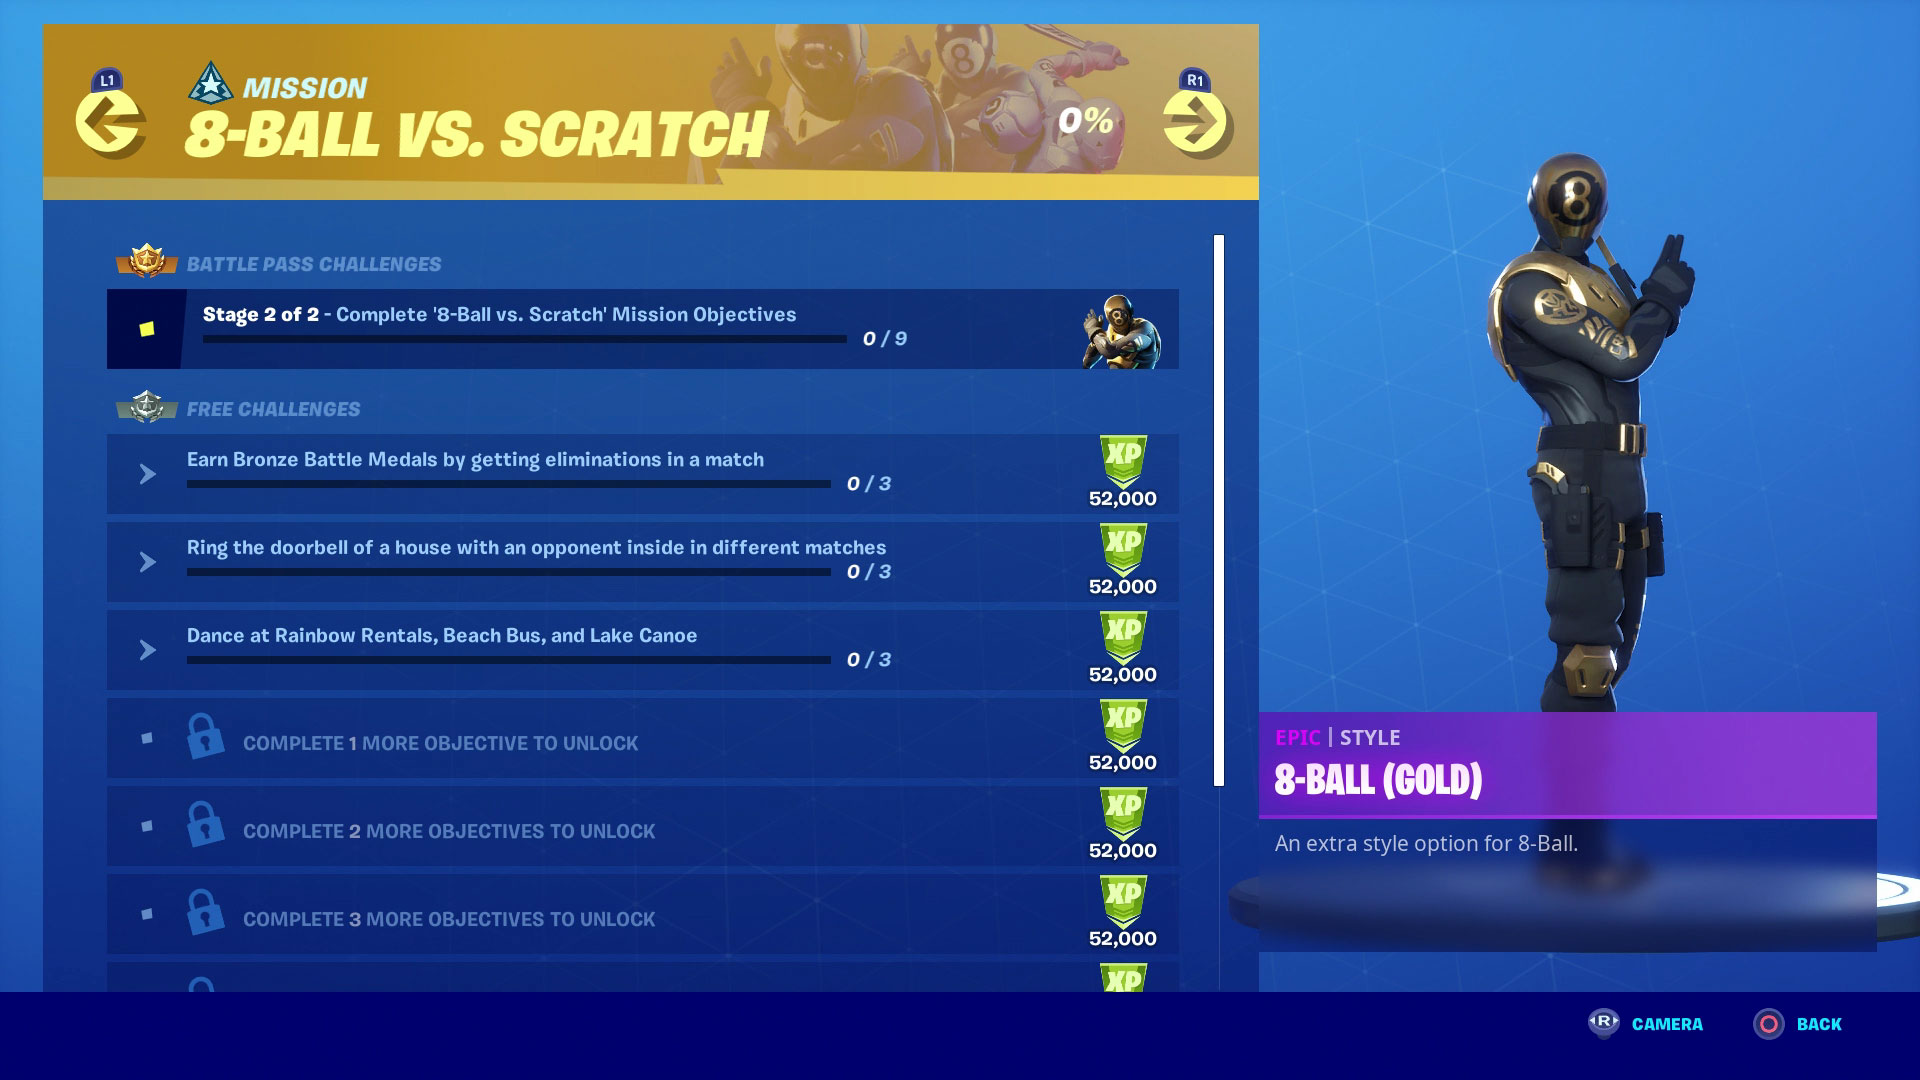 Where Are All The Doorbell Places In Fortnite Fortnite 8 Ball Vs Scratch Challenges How To Beat The Full Chapter 2 Season 1 Mission Gamesradar